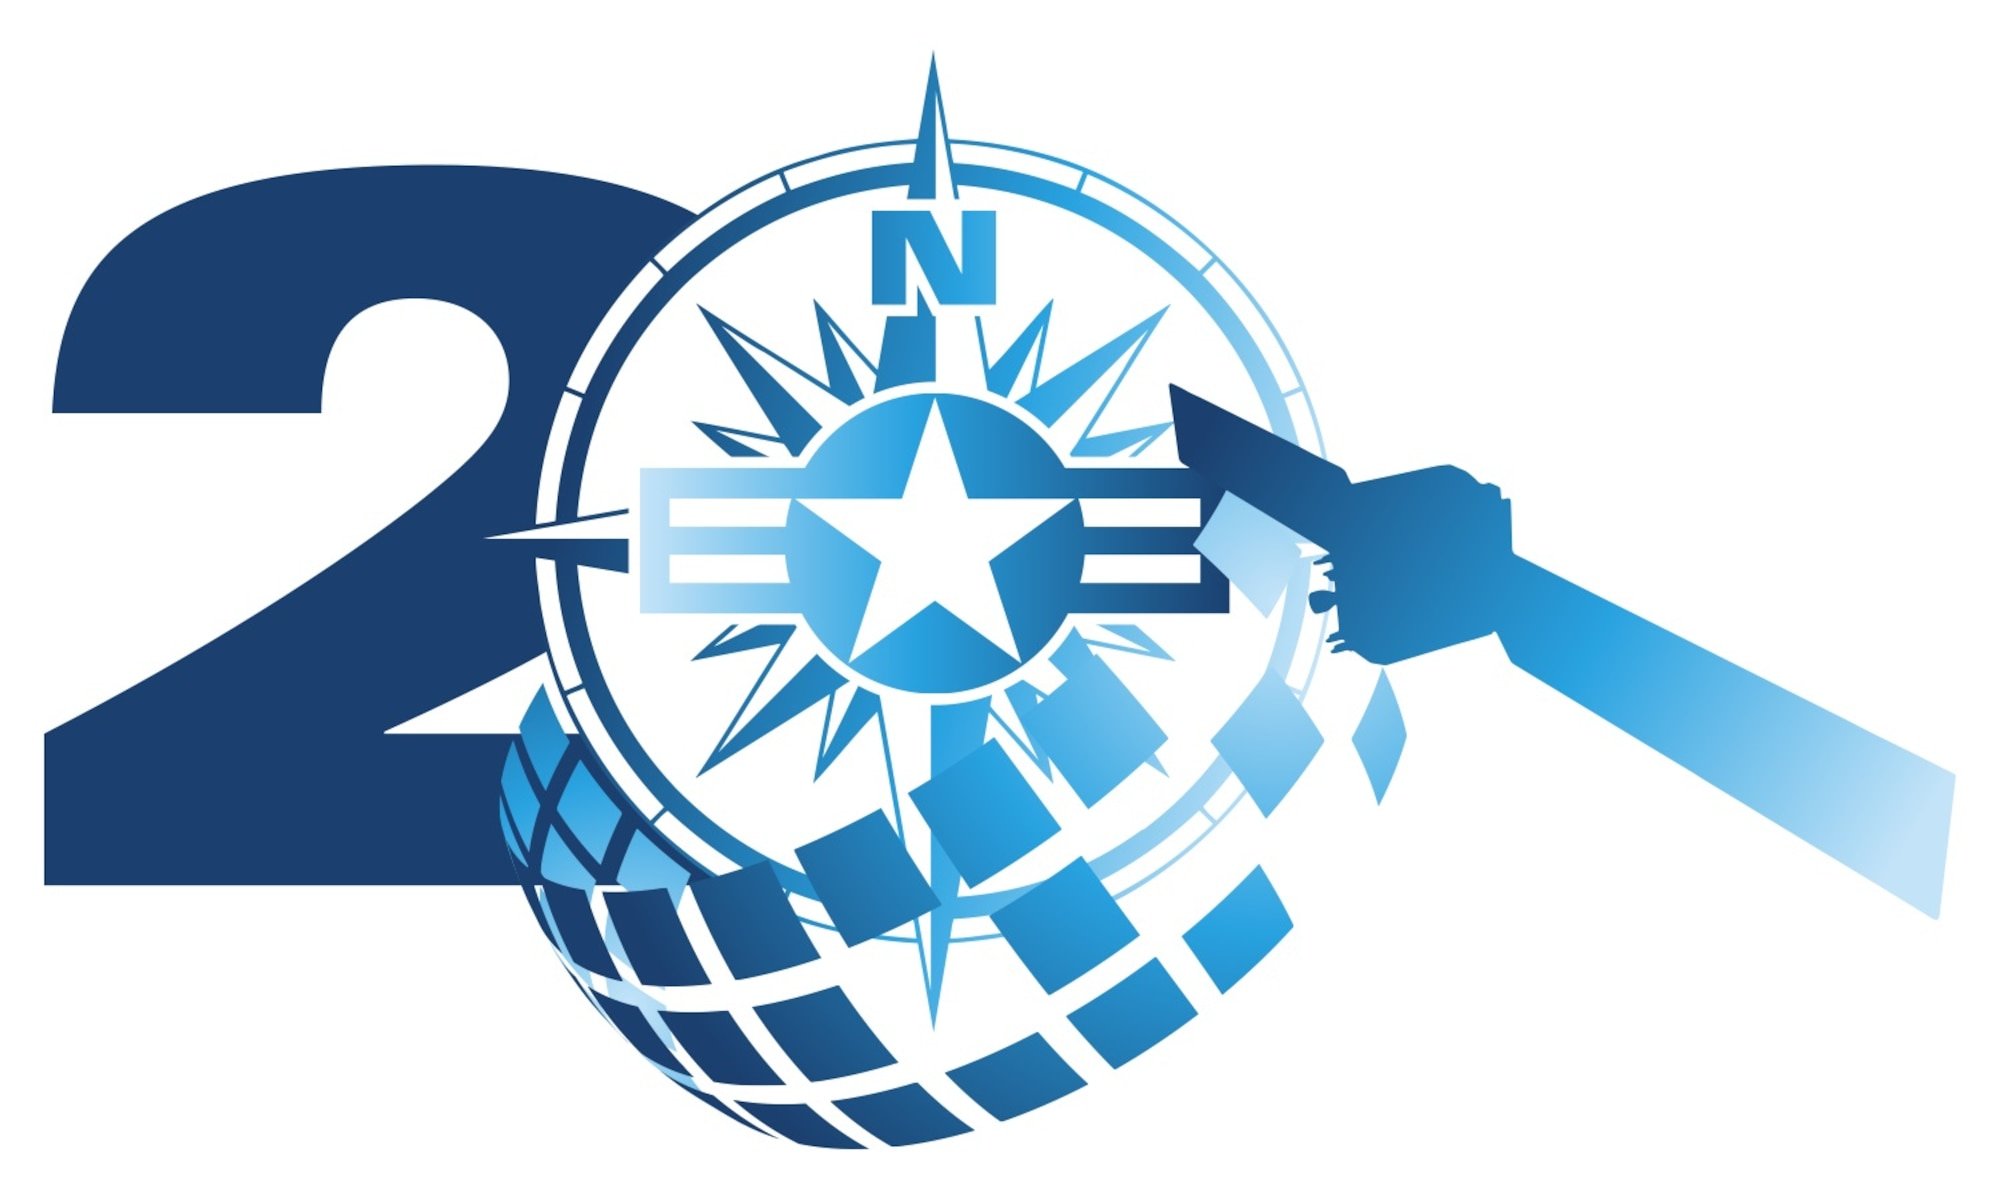 The 20th anniversary of the GPS full operational capability is July 17, 2015. (Courtesy graphic)